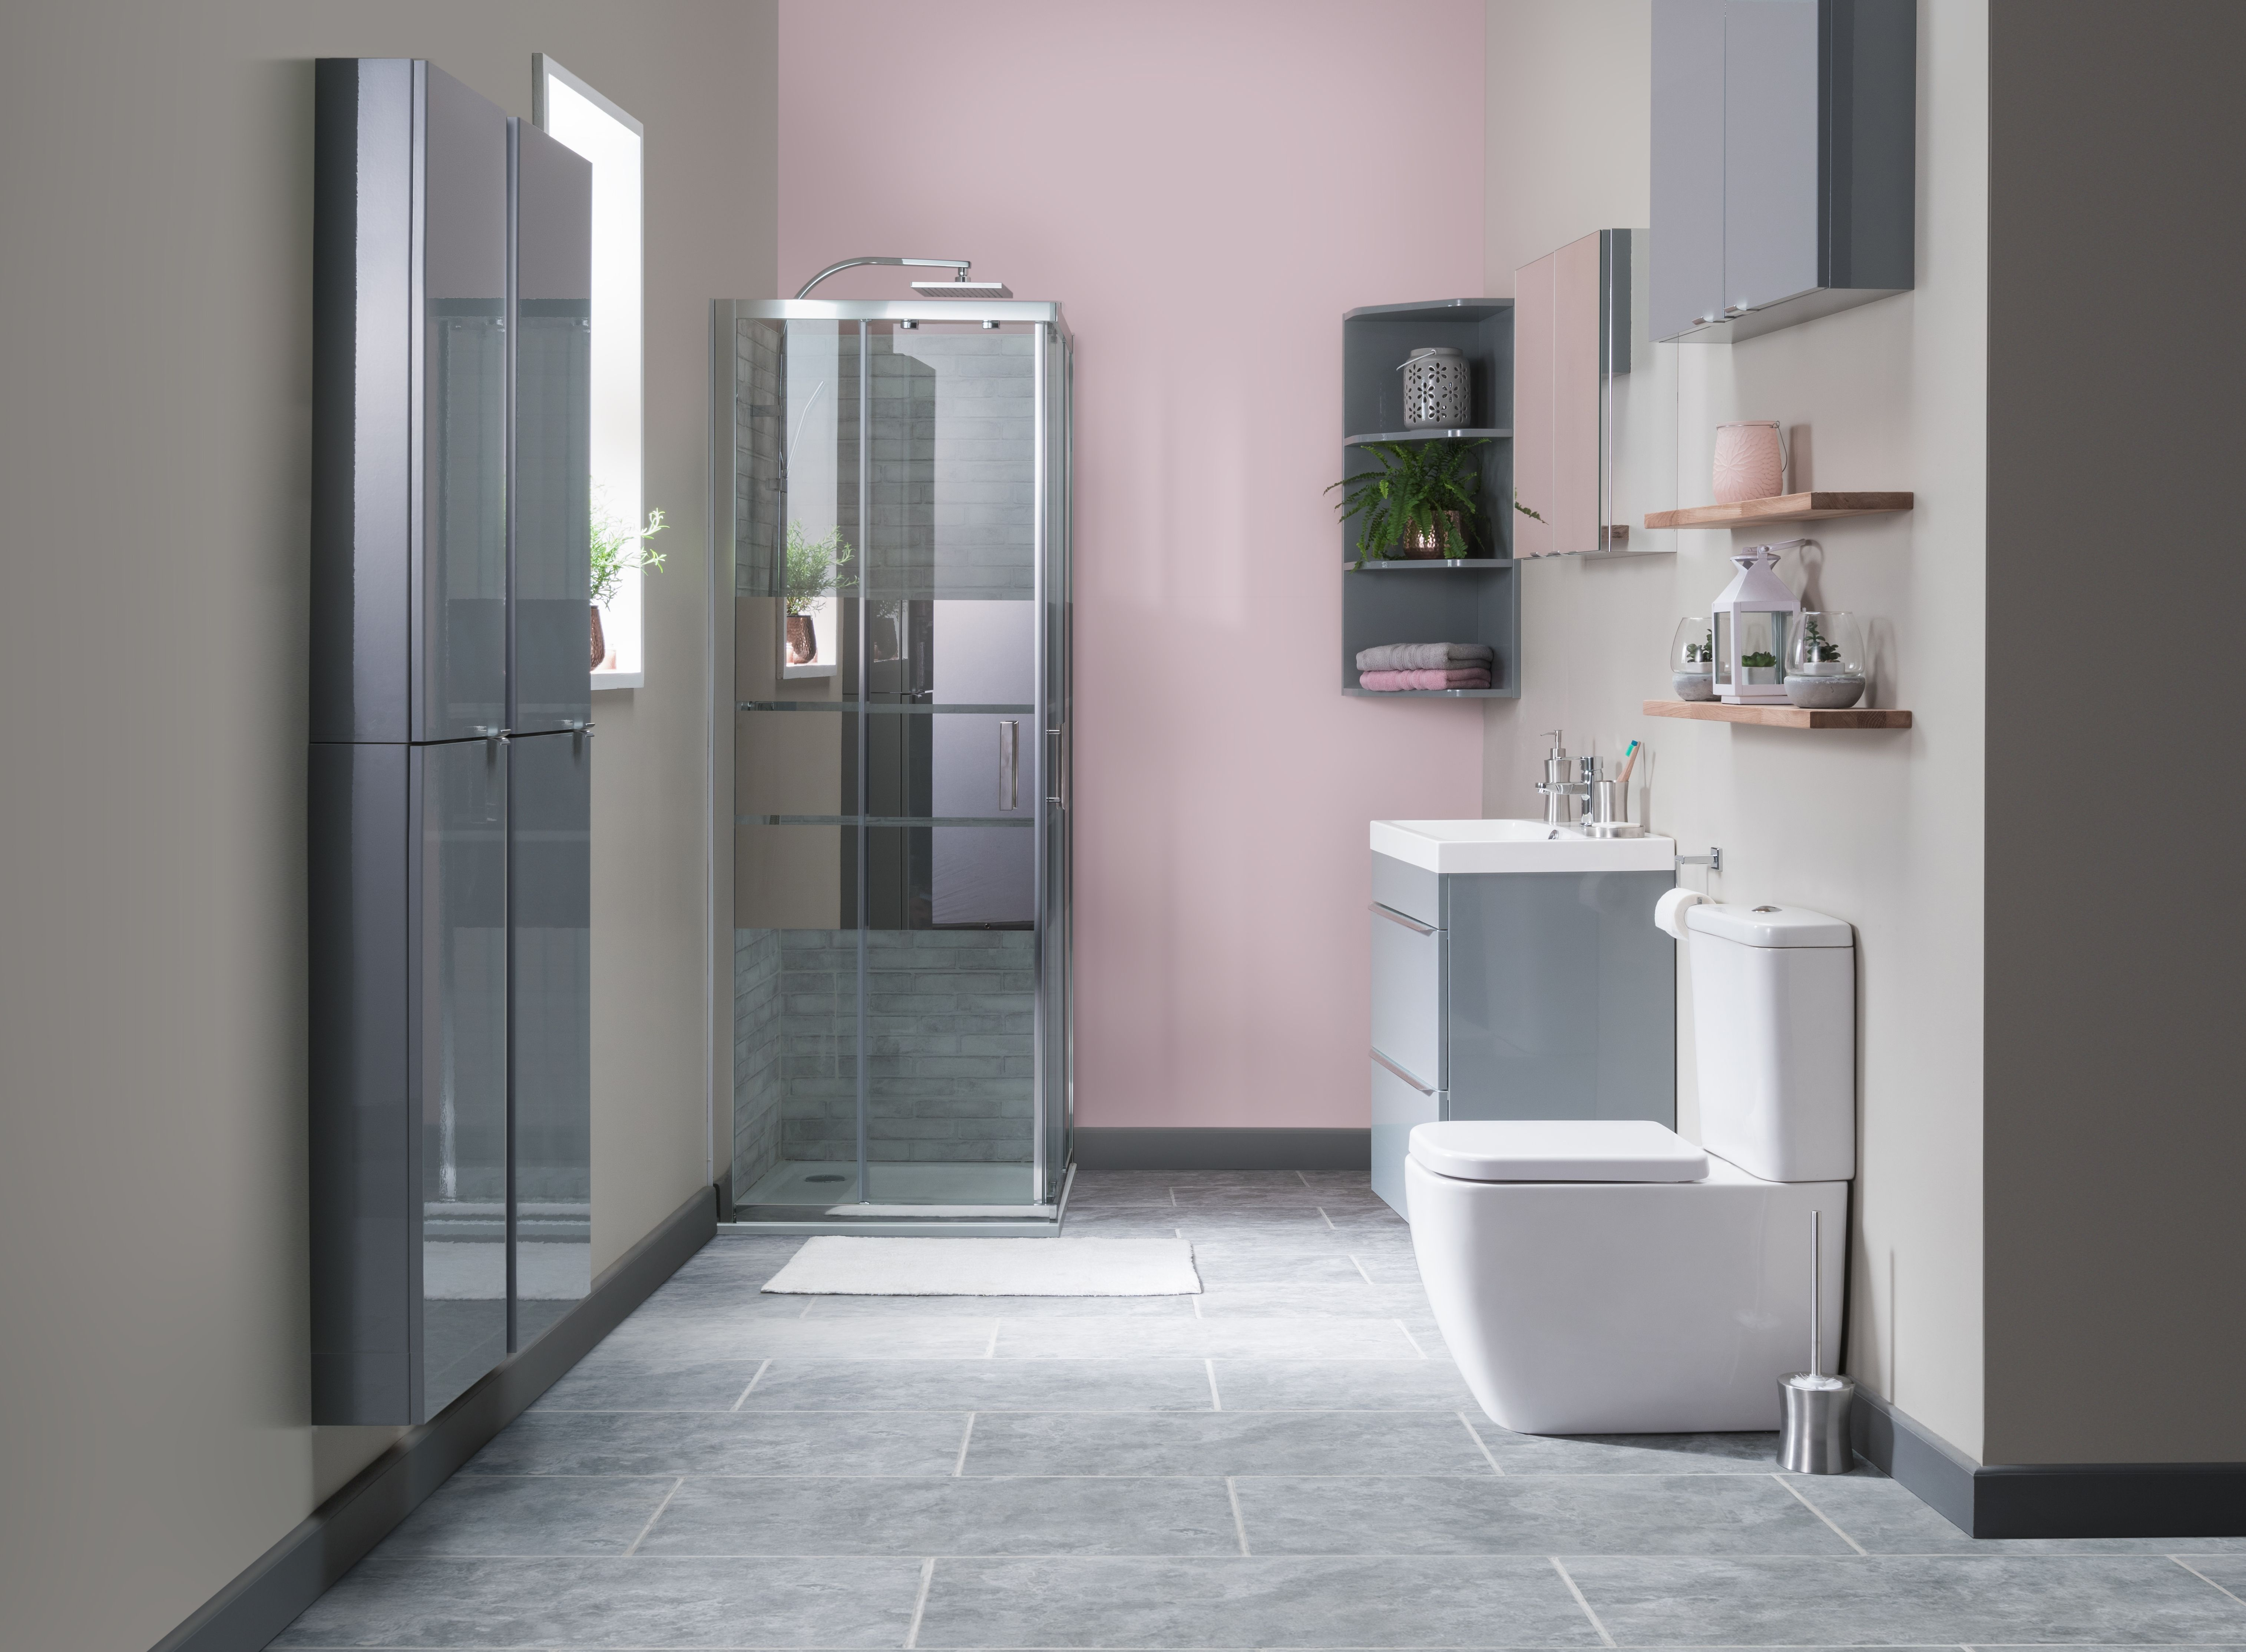 b q s imandra collection is perfect for small bathrooms on home inspirations this year the perfect dream bathrooms diy bathroom ideas id=28495